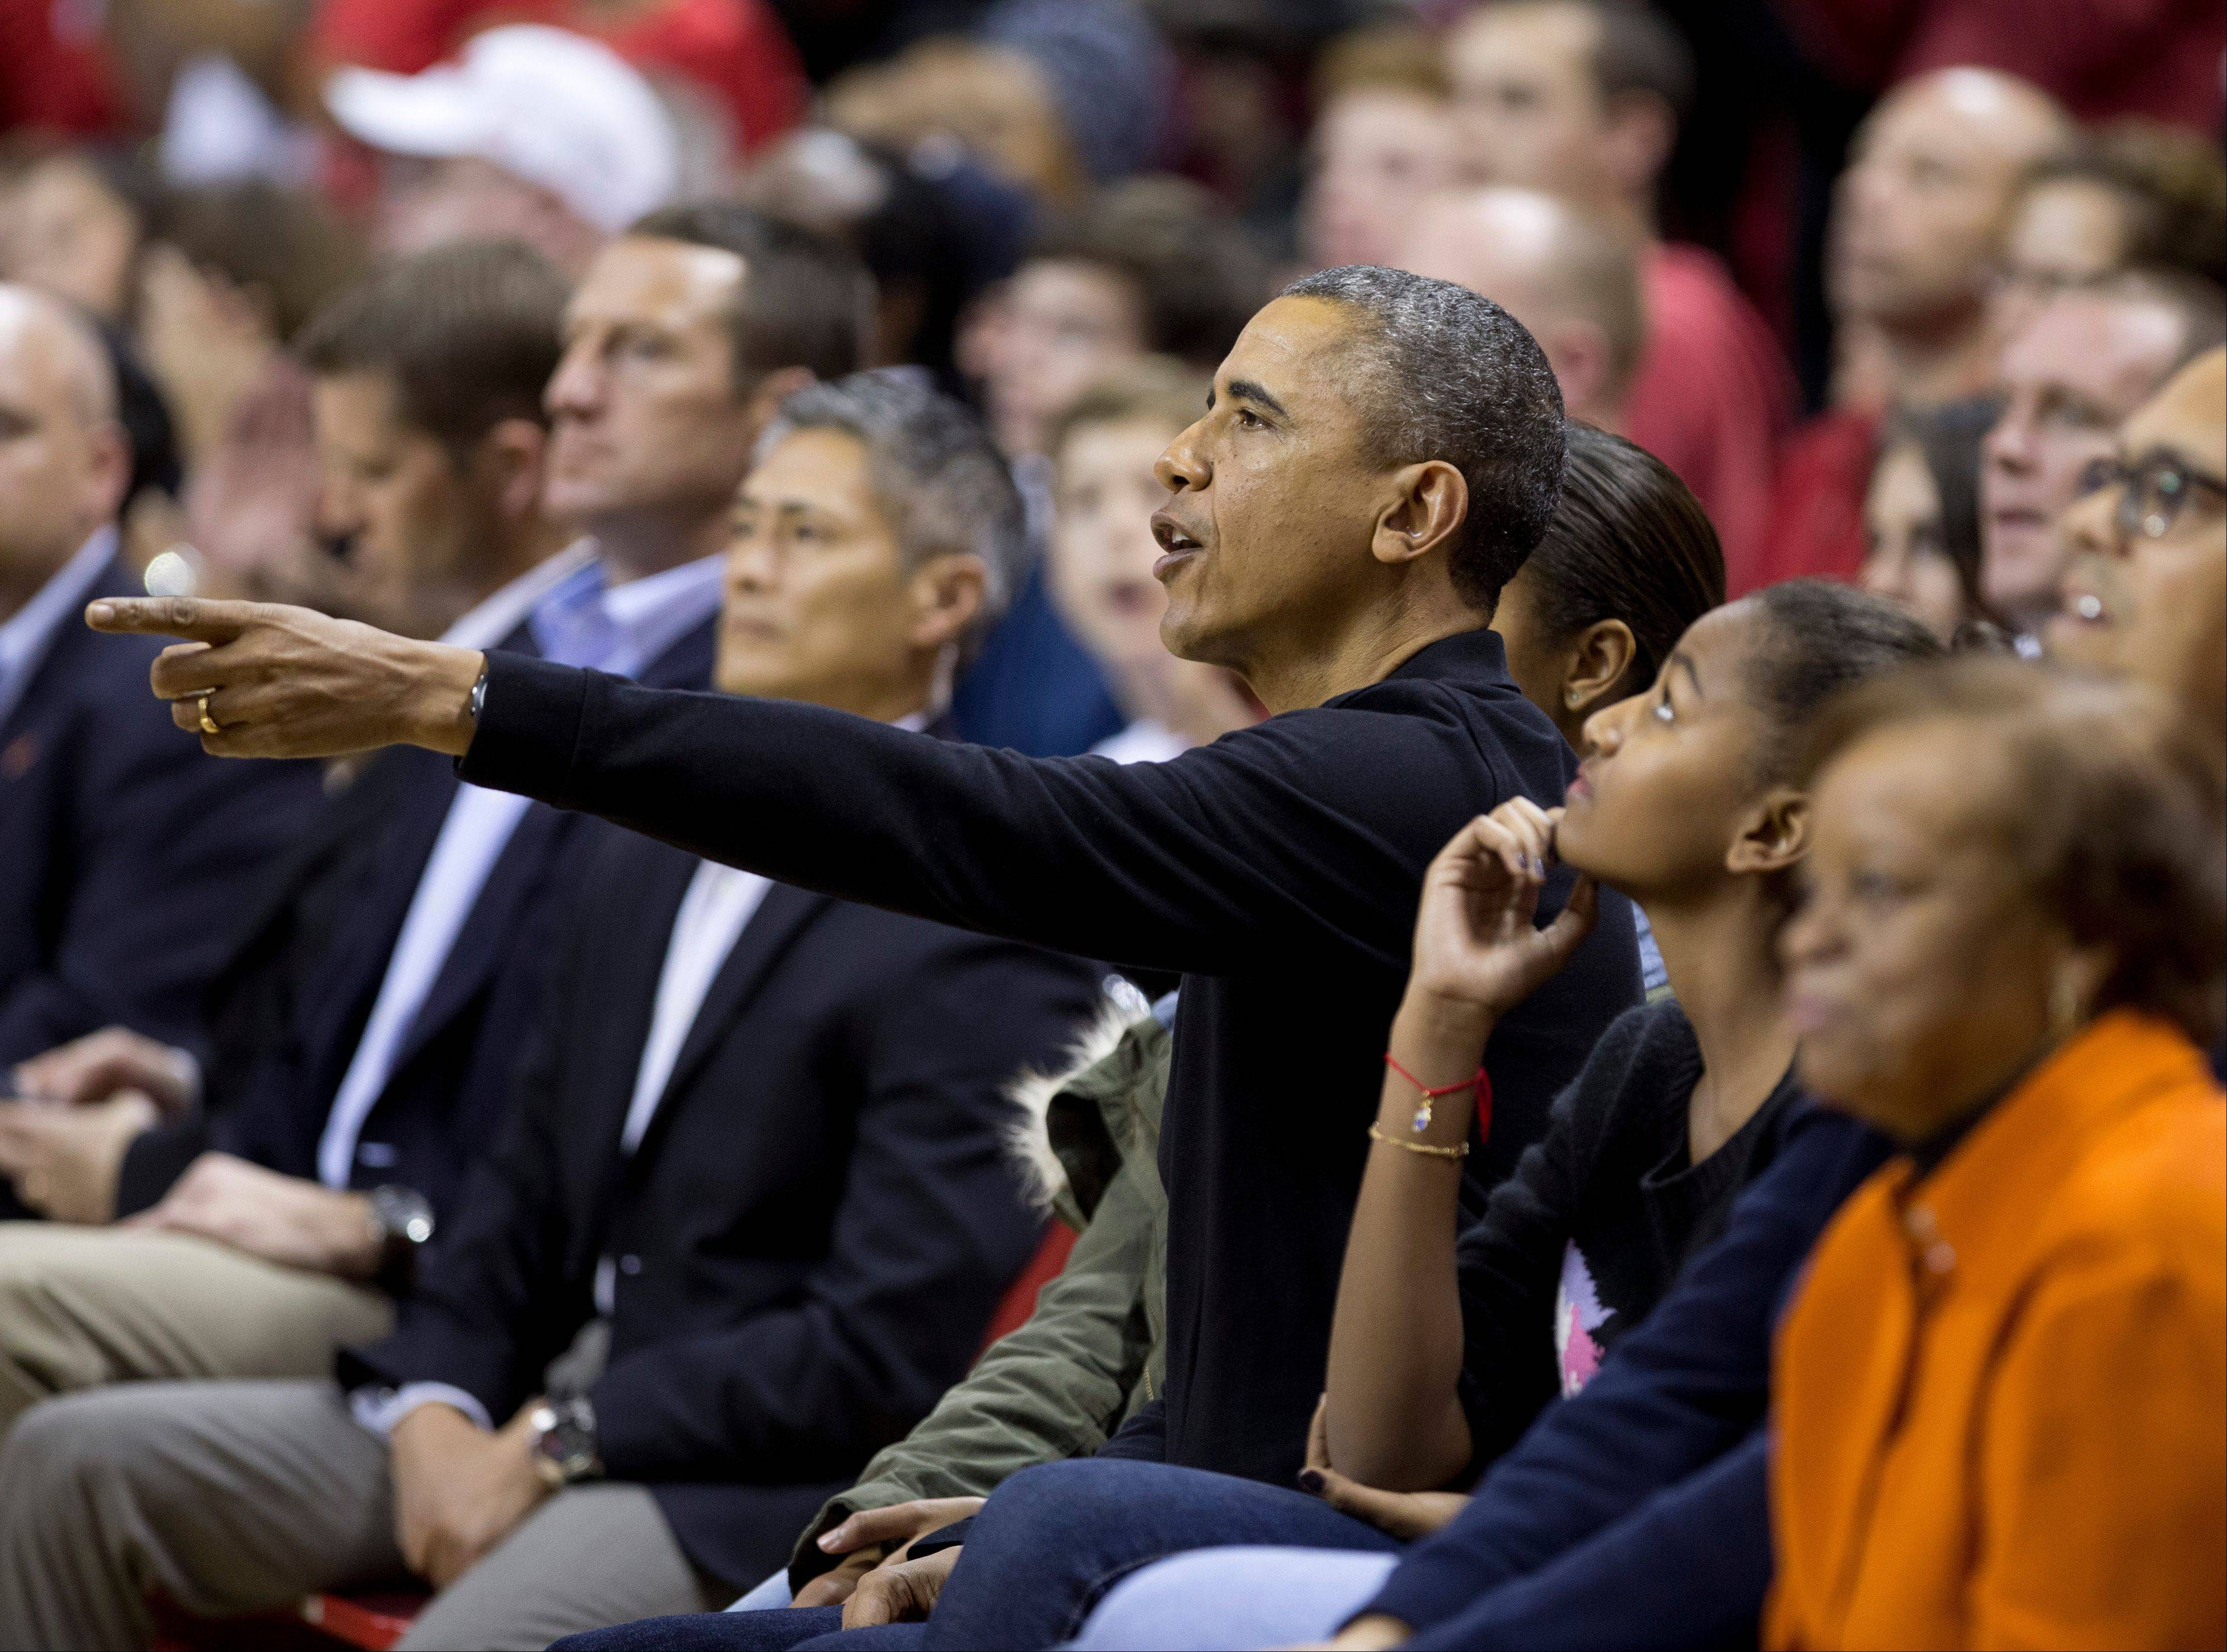 President Barack Obama, third from right, with first lady Michelle Obama, and their daughters Malia, and Sasha, second from left, and mother-in-law Marian Robinson, right, watch a basketball game between his brother-in-law Oregon State Beavers Coach Craig Robinson's team play against the Maryland Terrapins on Sunday in College Park, Md.